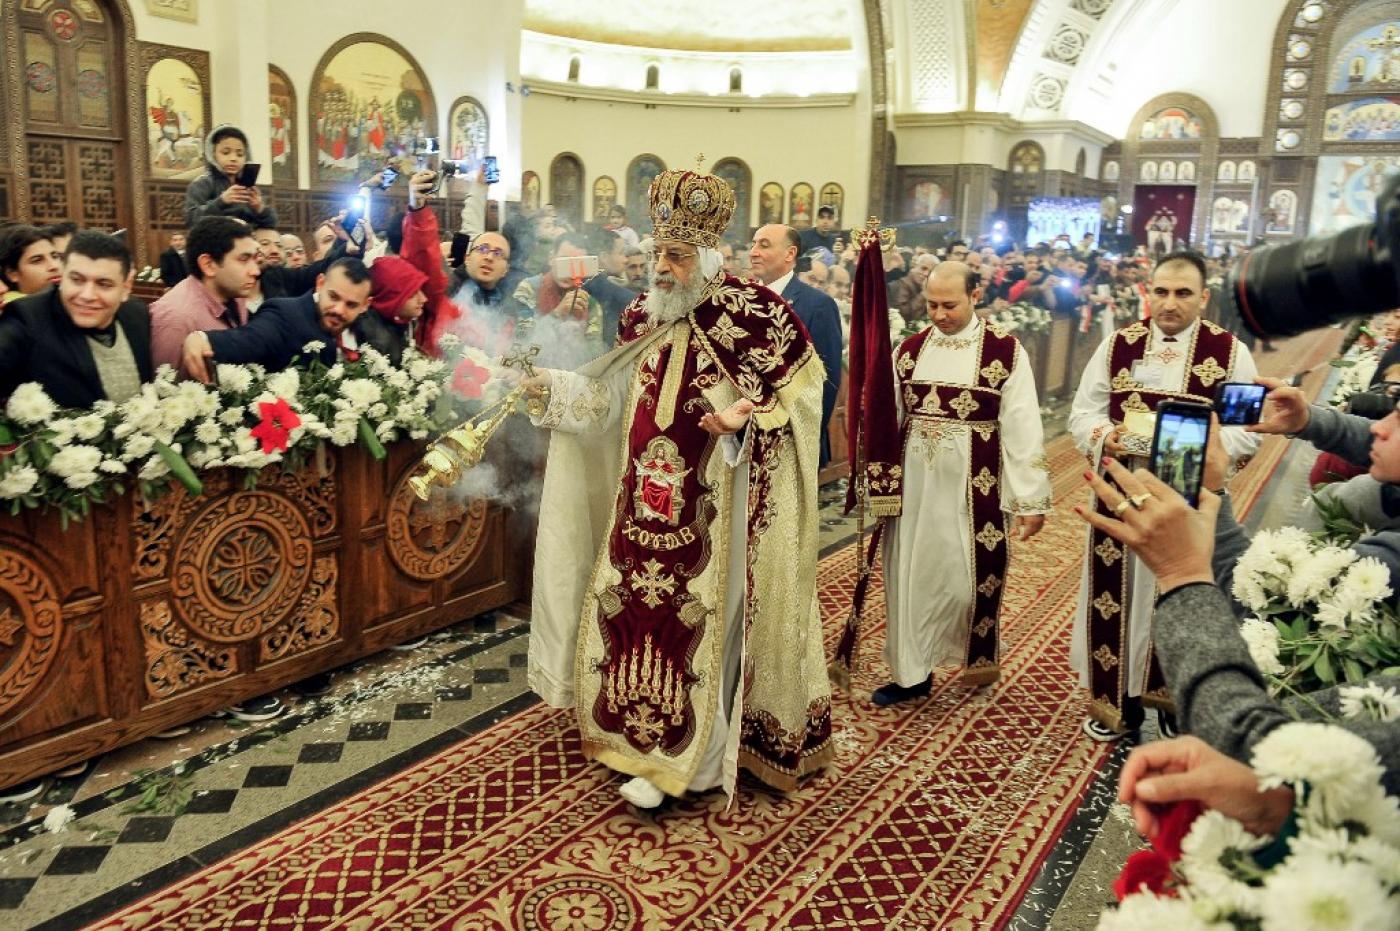 Popes Christmas Mass 2020 What's different about Coptic Christmas? | Middle East Eye